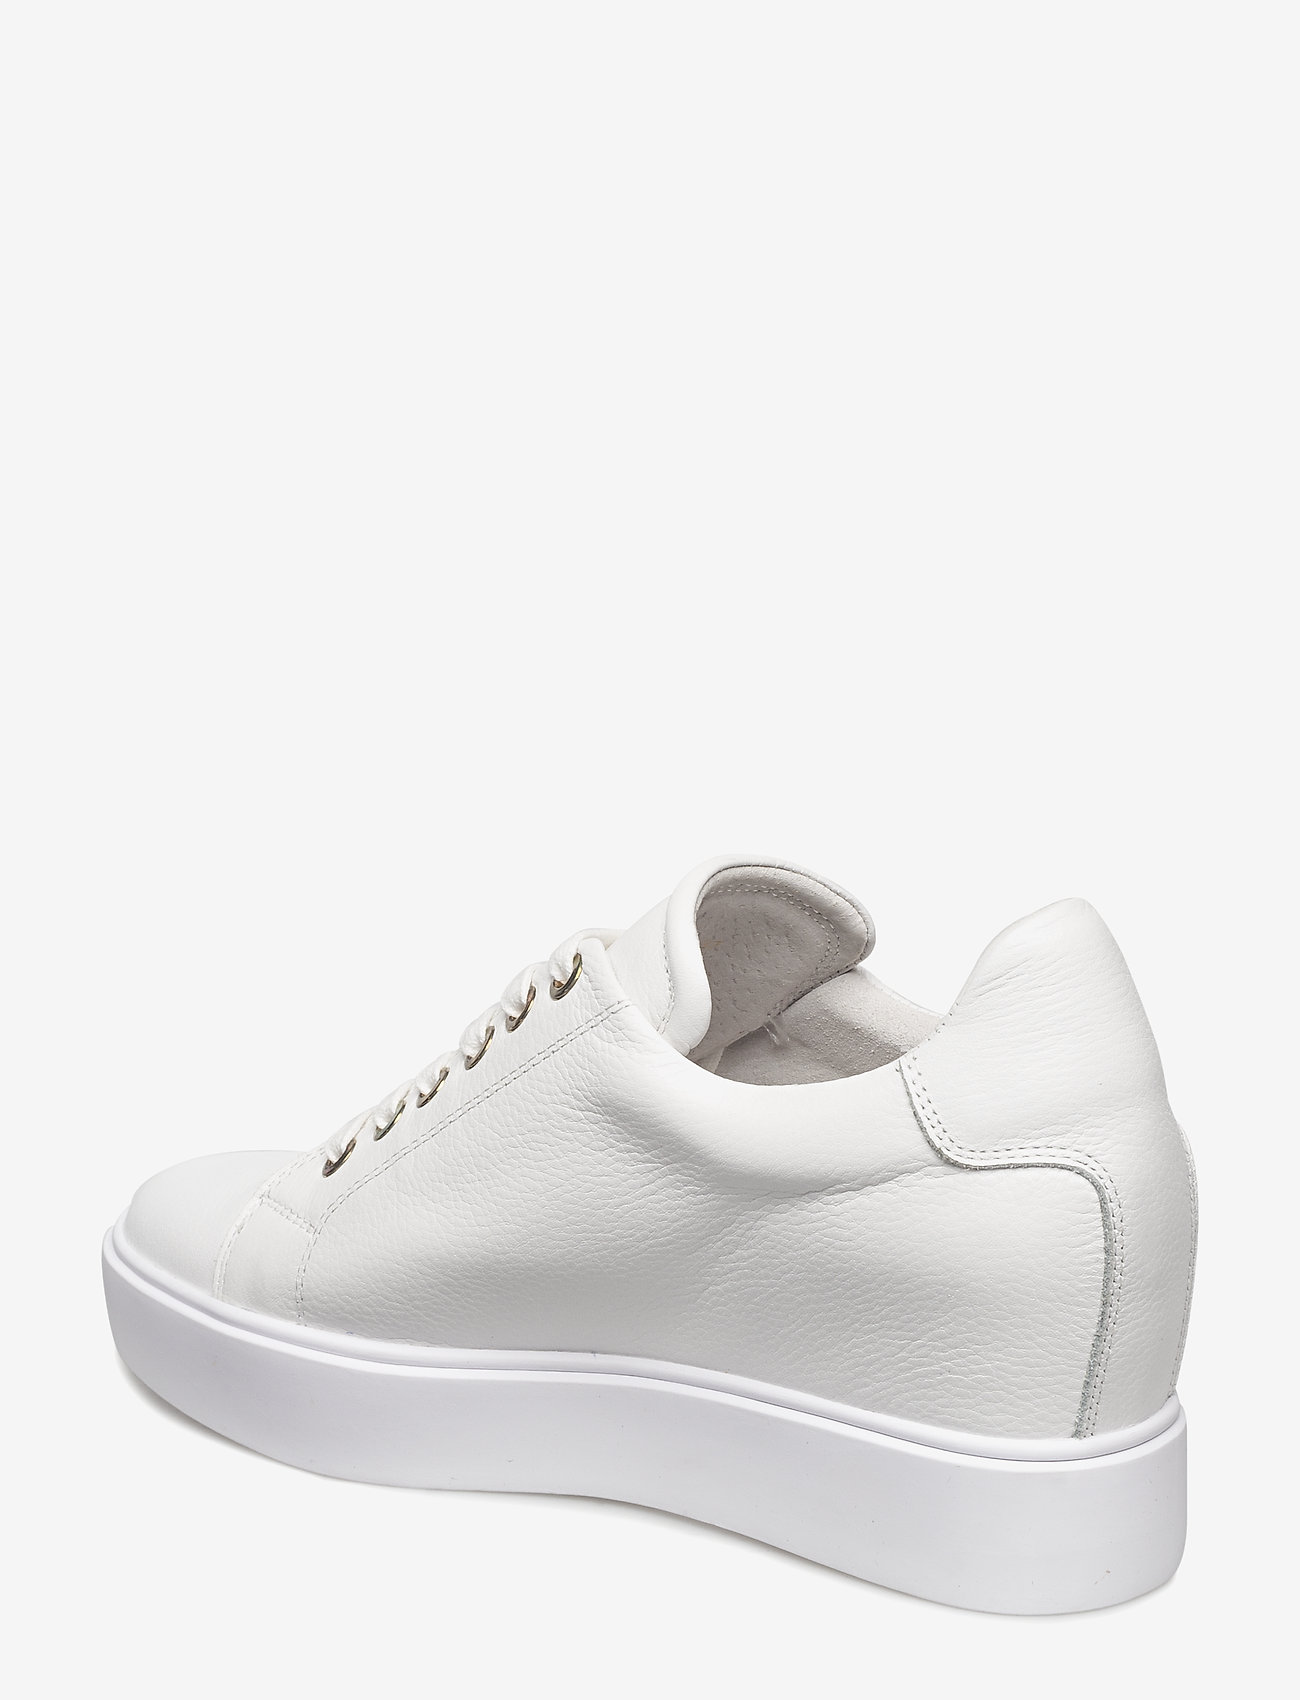 Ava Grain (White) - Shoe The Bear